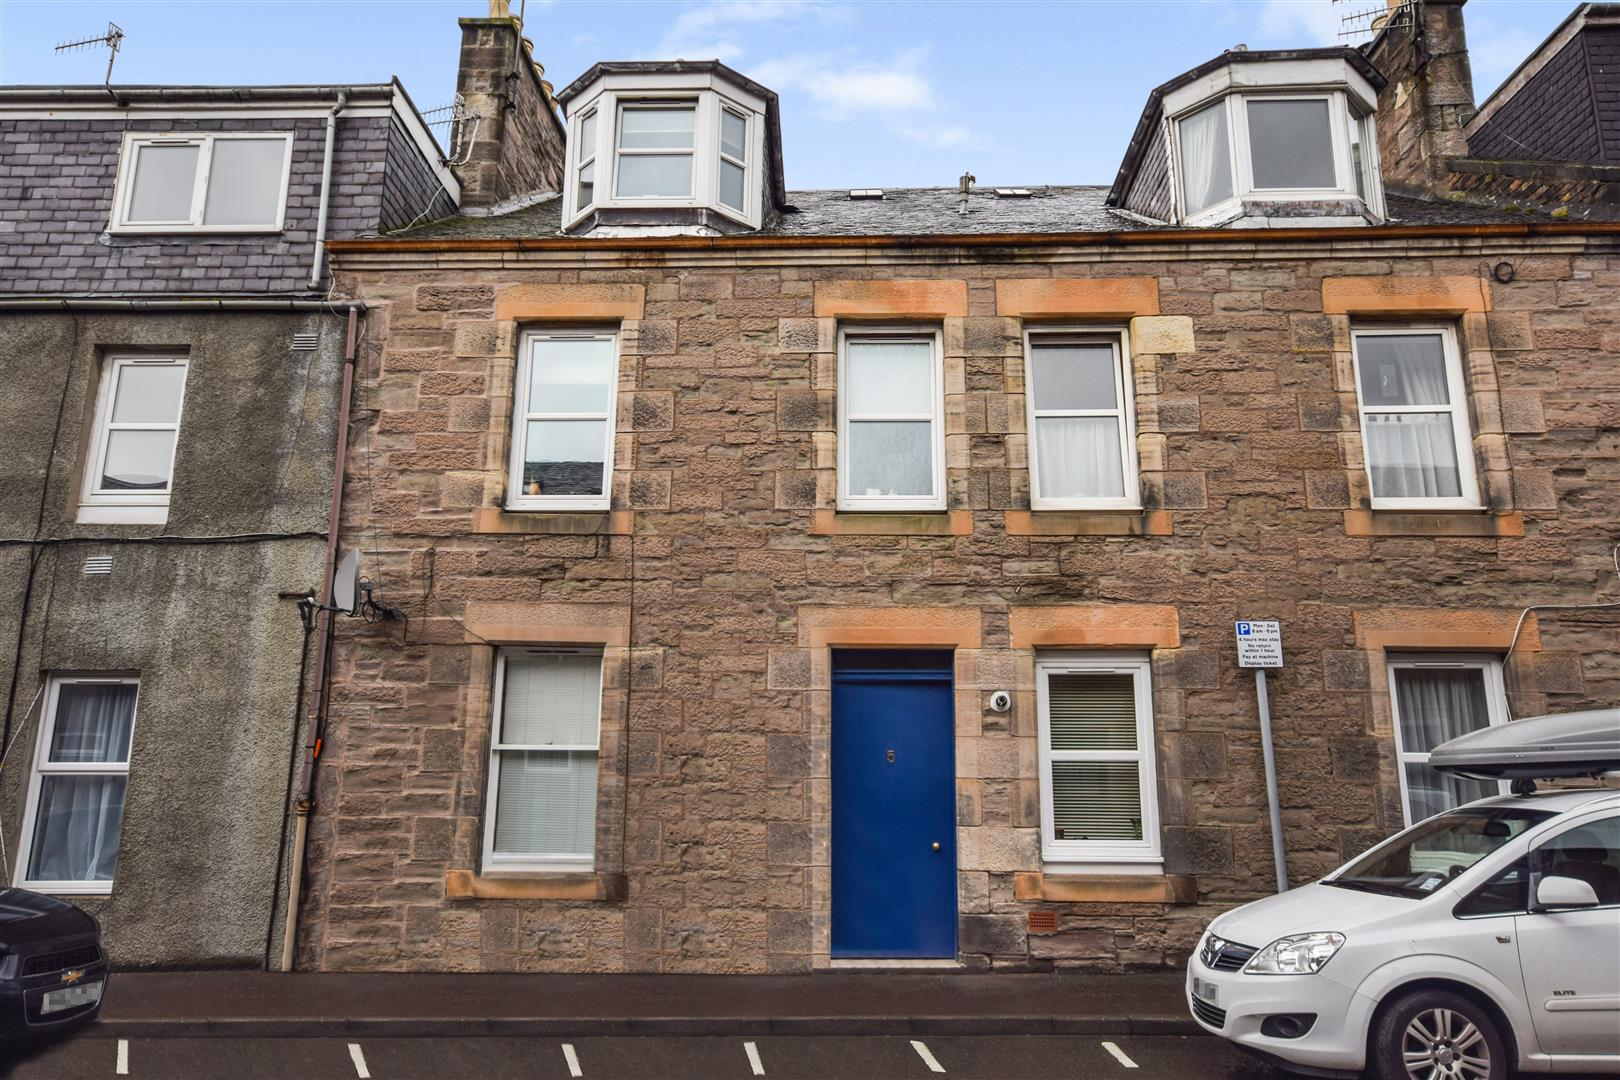 5C, James Street, Perth, Perthshire, PH2 8LZ, UK